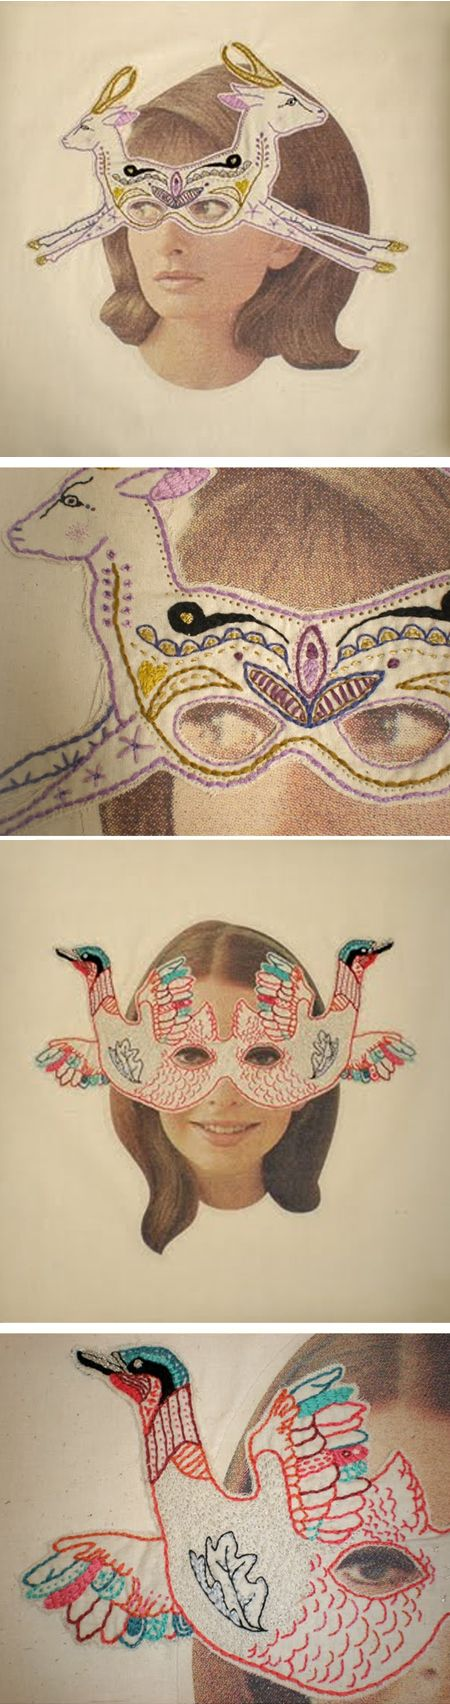 laura mckellar - embroidered art <3